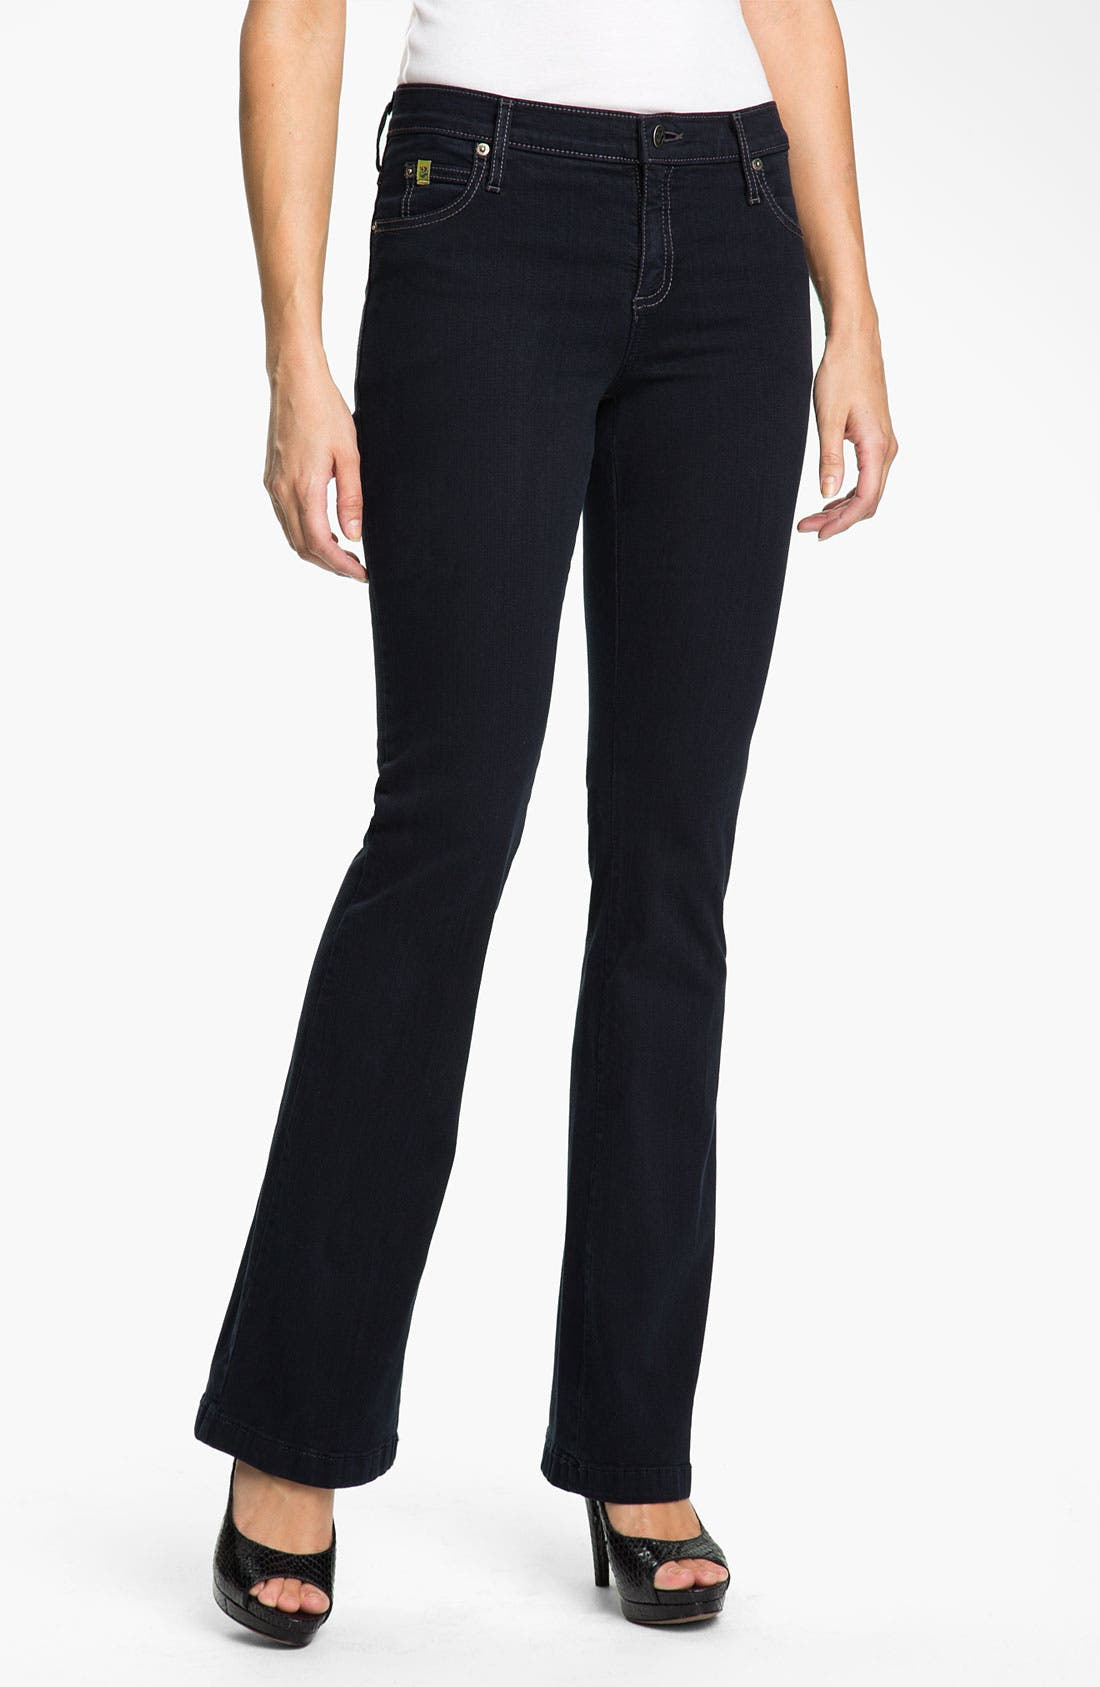 Main Image - Yoga Jeans by Second Denim Bootcut Jeans